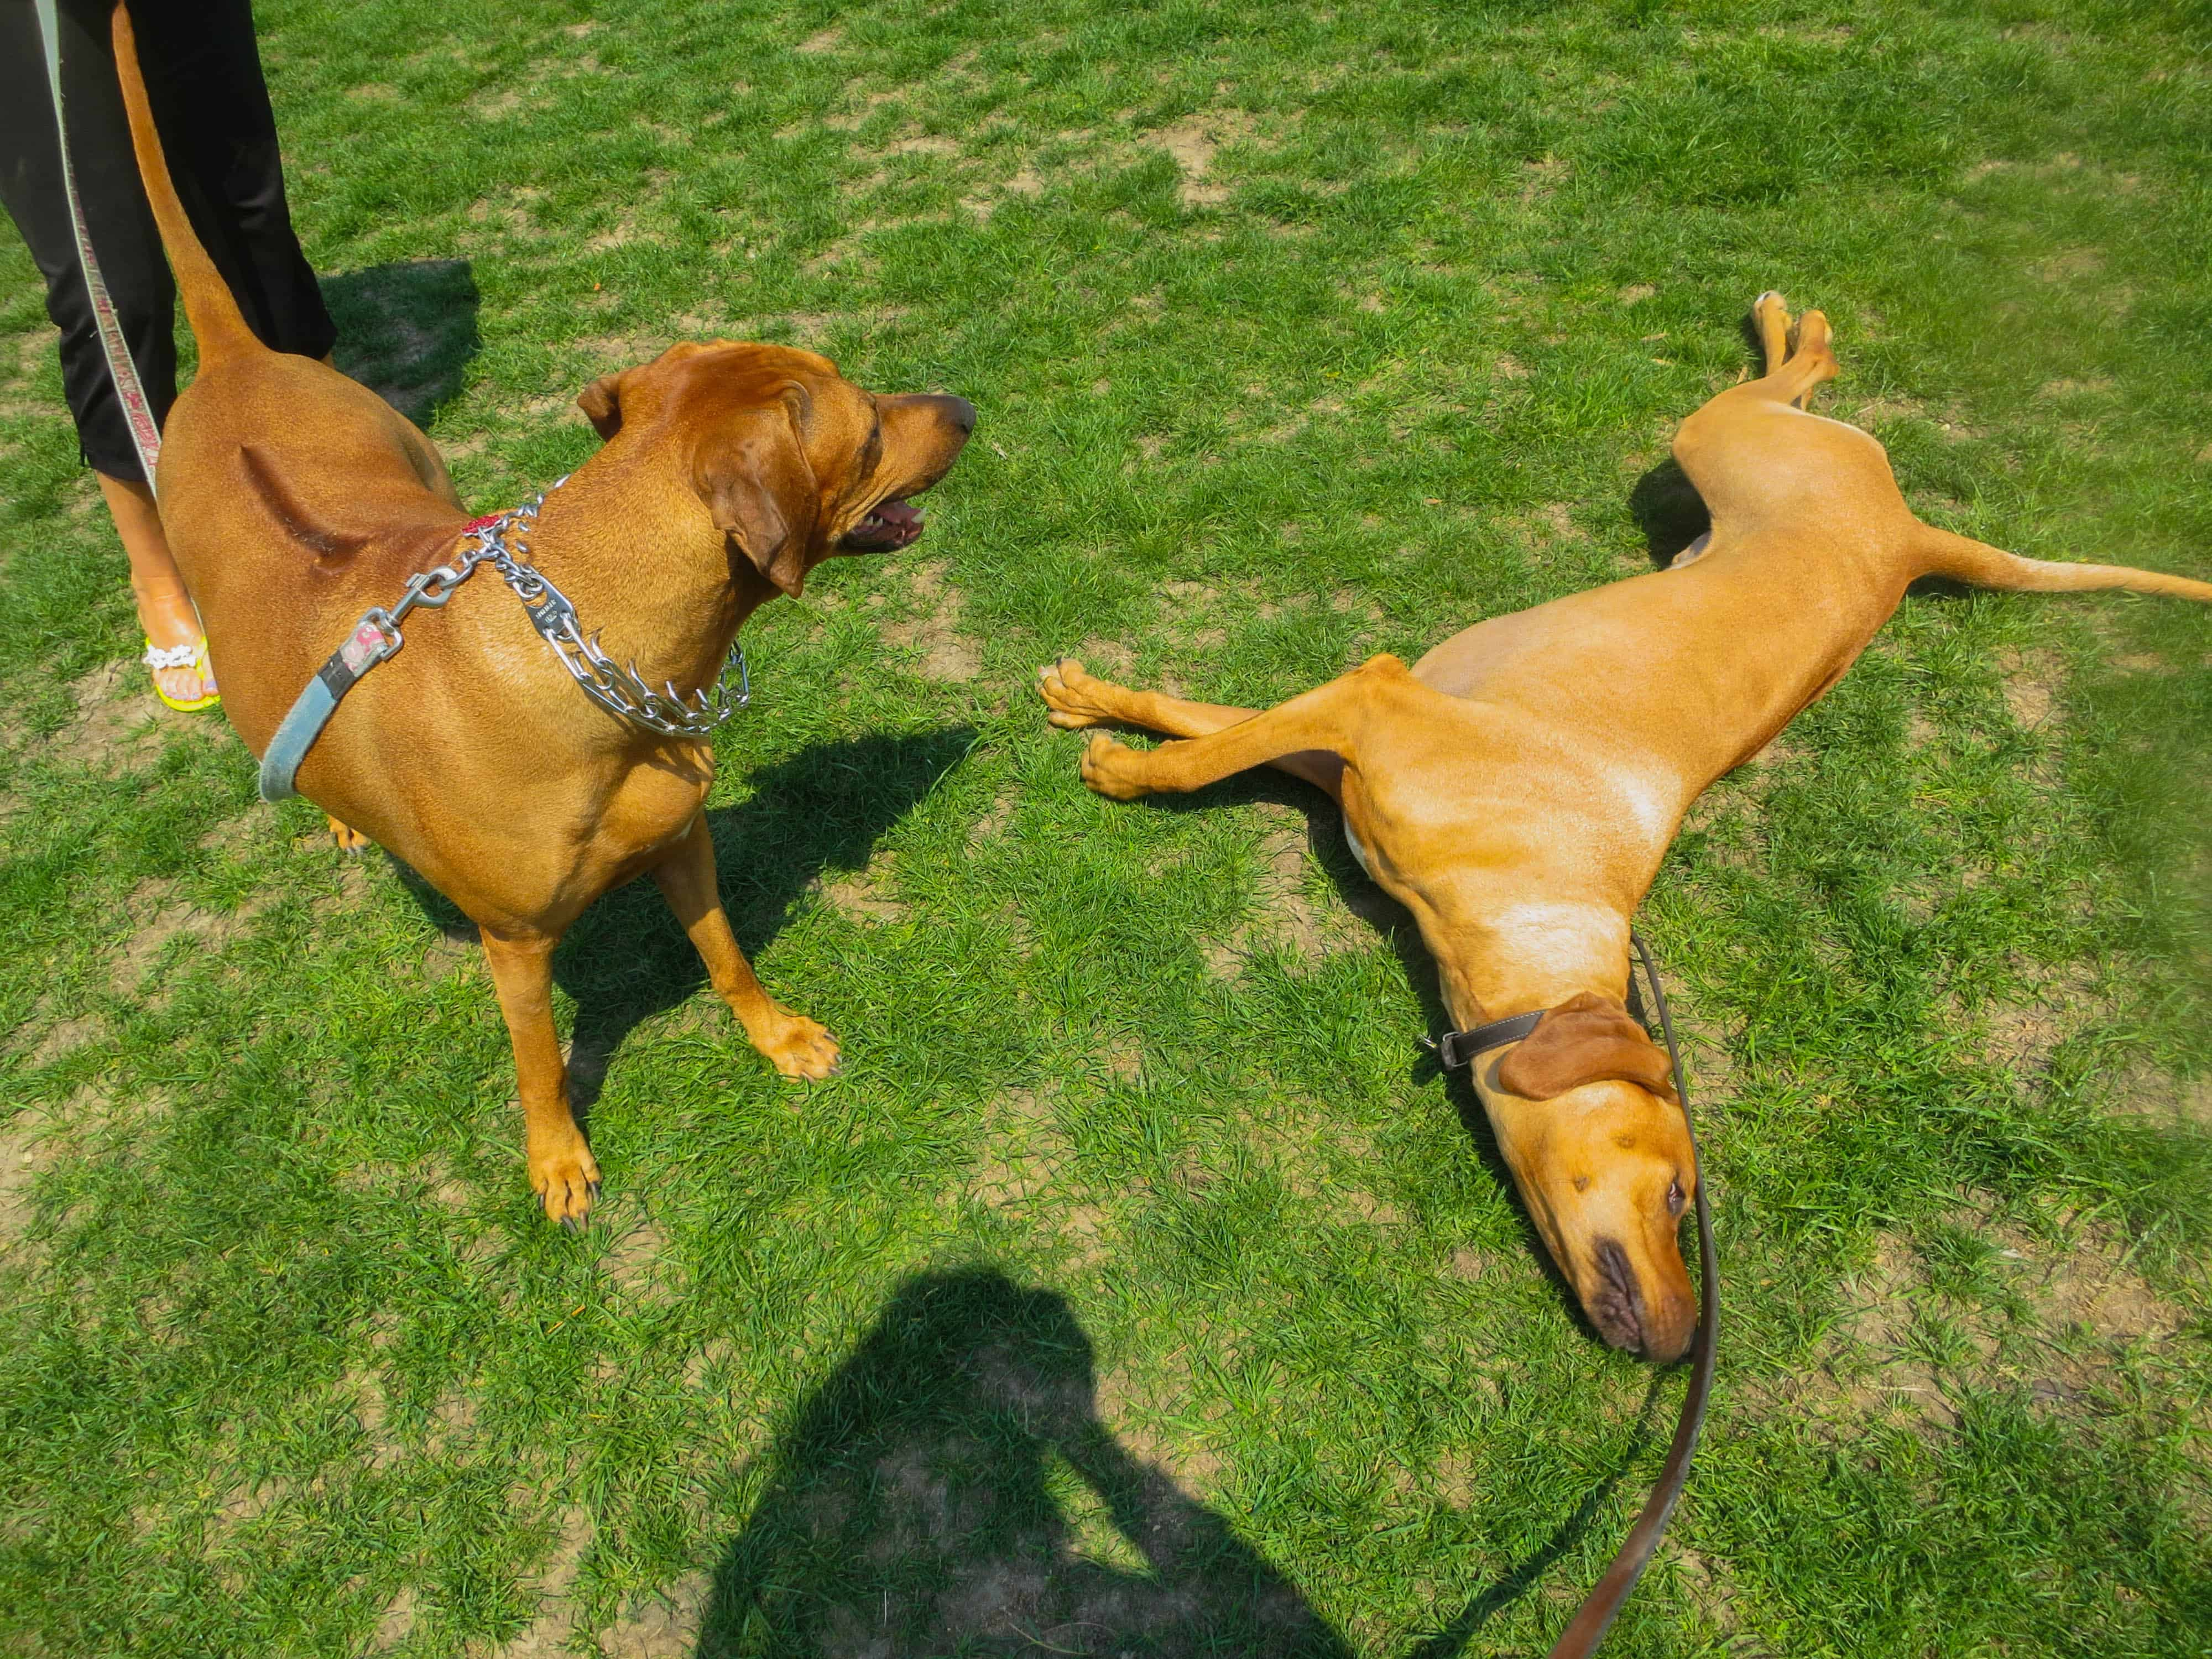 Rhodesian Ridgeback photos, pet adventure, dog blog